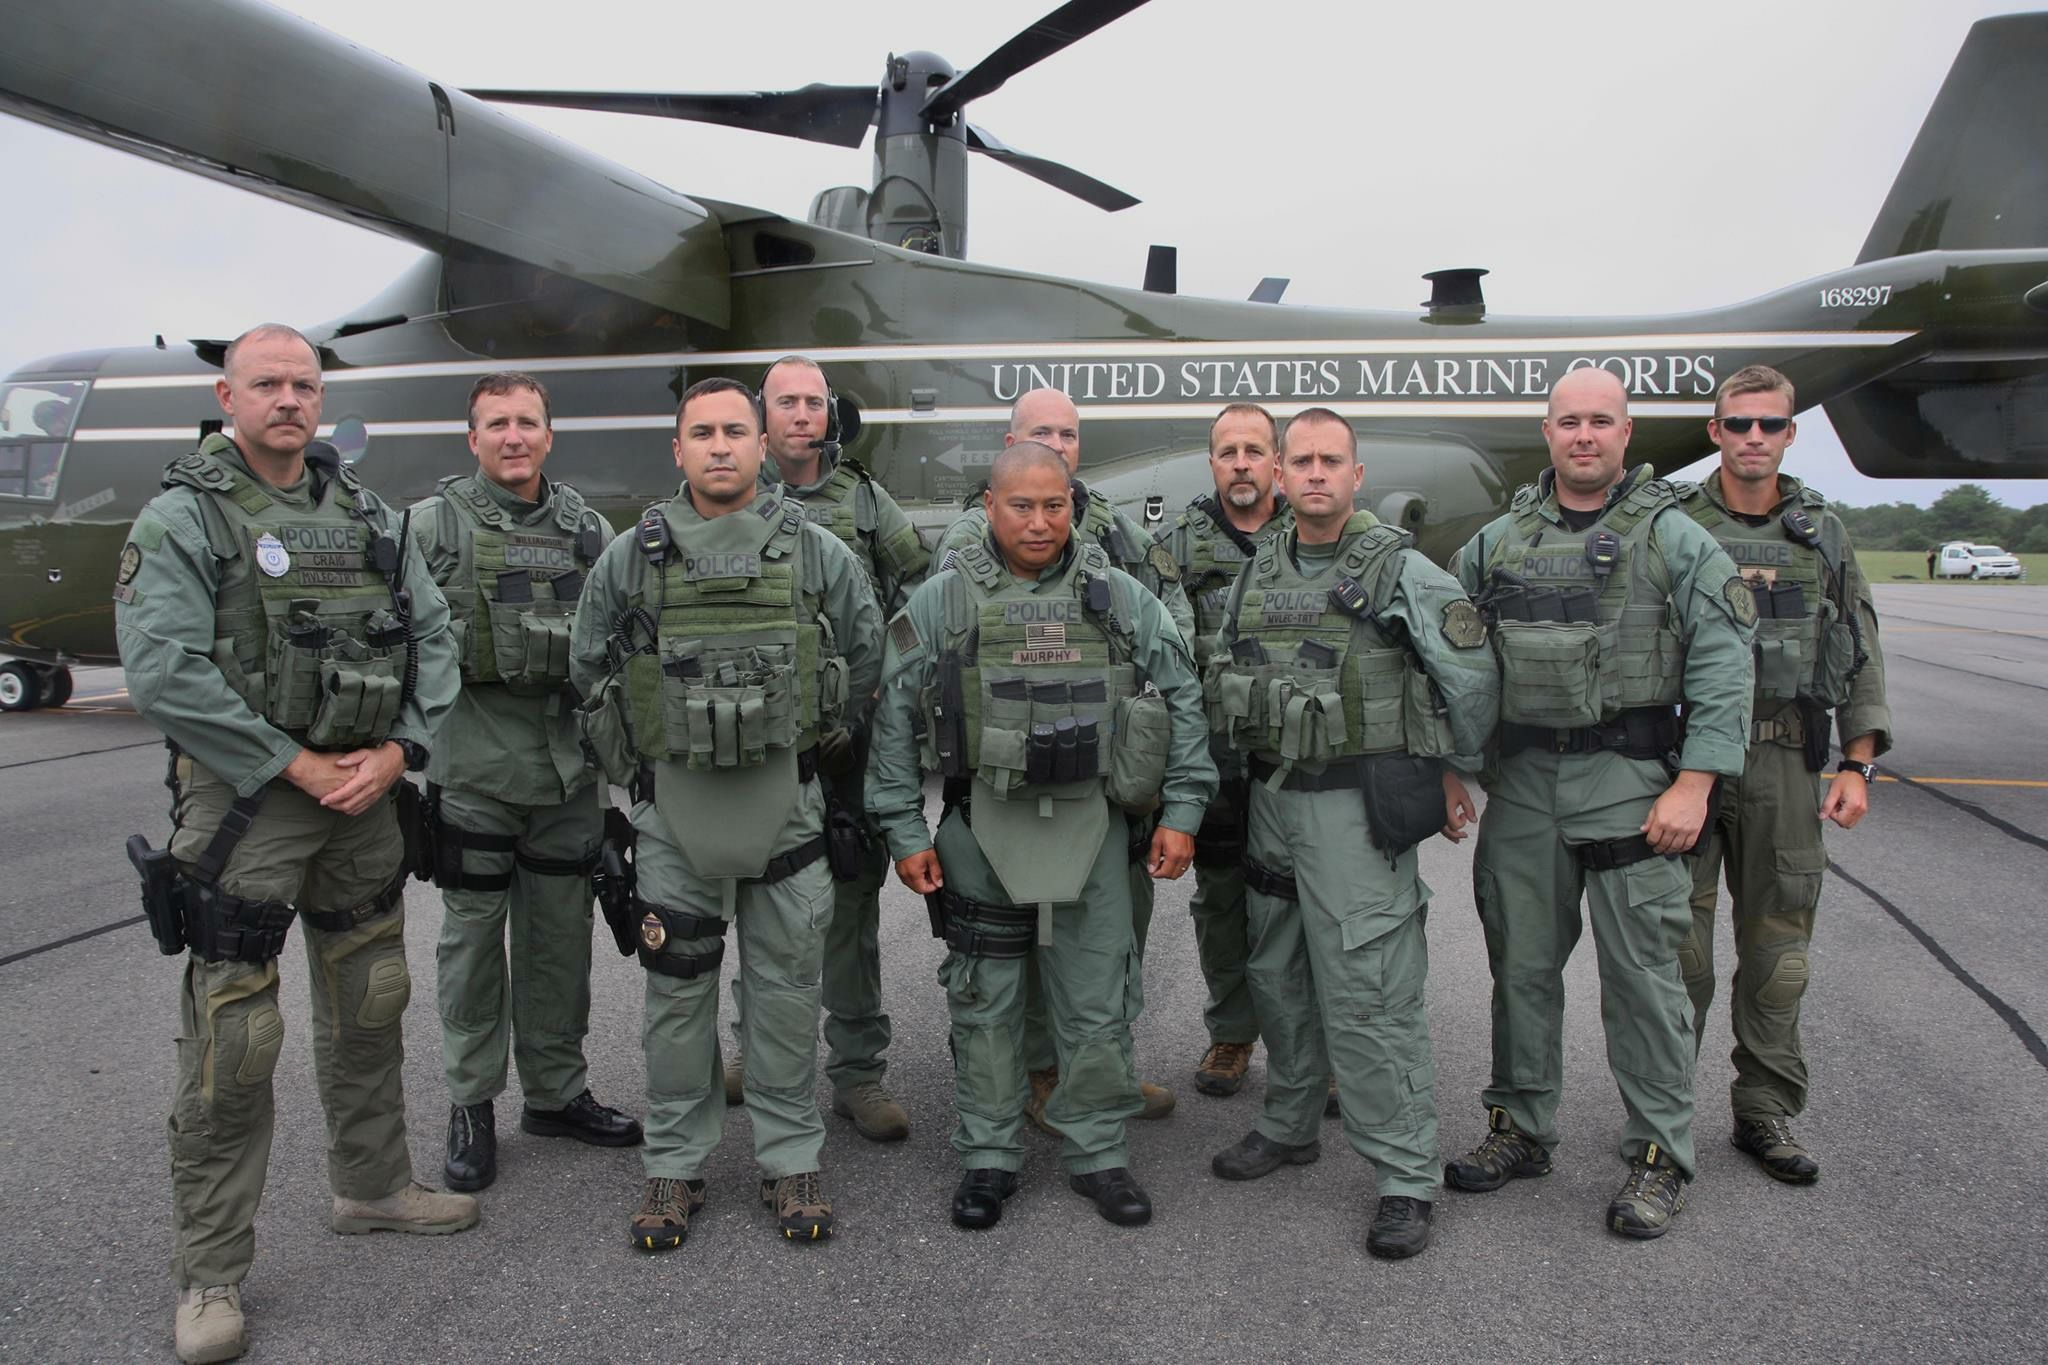 becoming an army helicopter pilot with Be Ing A Marine Corps Pilot 3354348 on Aac Requirements moreover 76777748 in addition Word On The Street AHSAFA American Helicopter Services Aerial Firefighting Association besides 2010 01 01 archive in addition Jose Alejandro Cruz Montes.